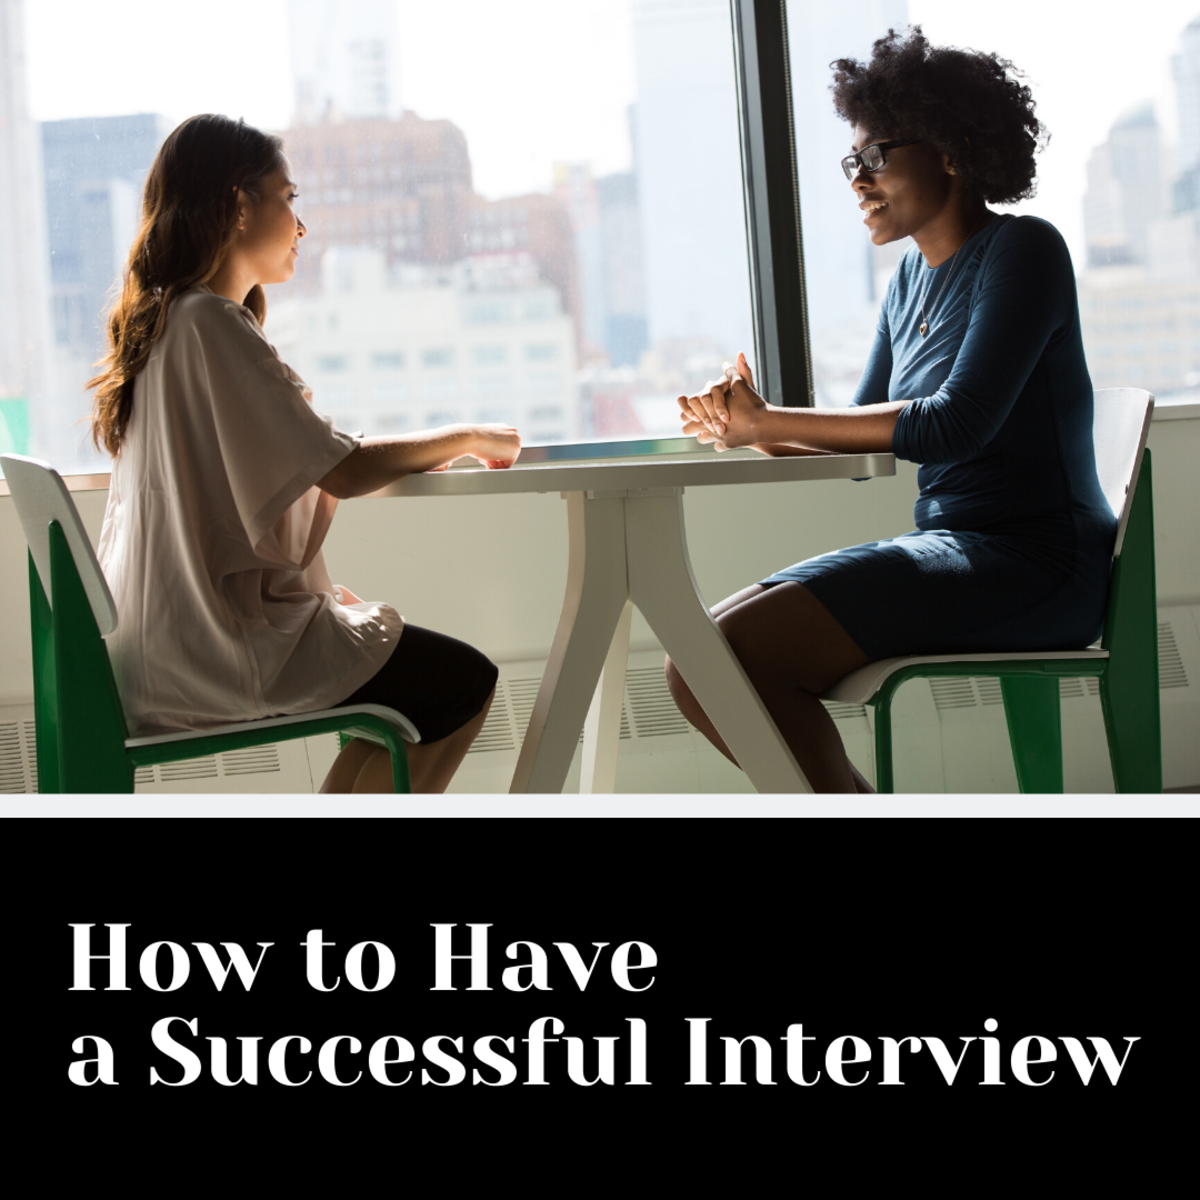 Learn how the STAR strategy can help you have a successful interview.